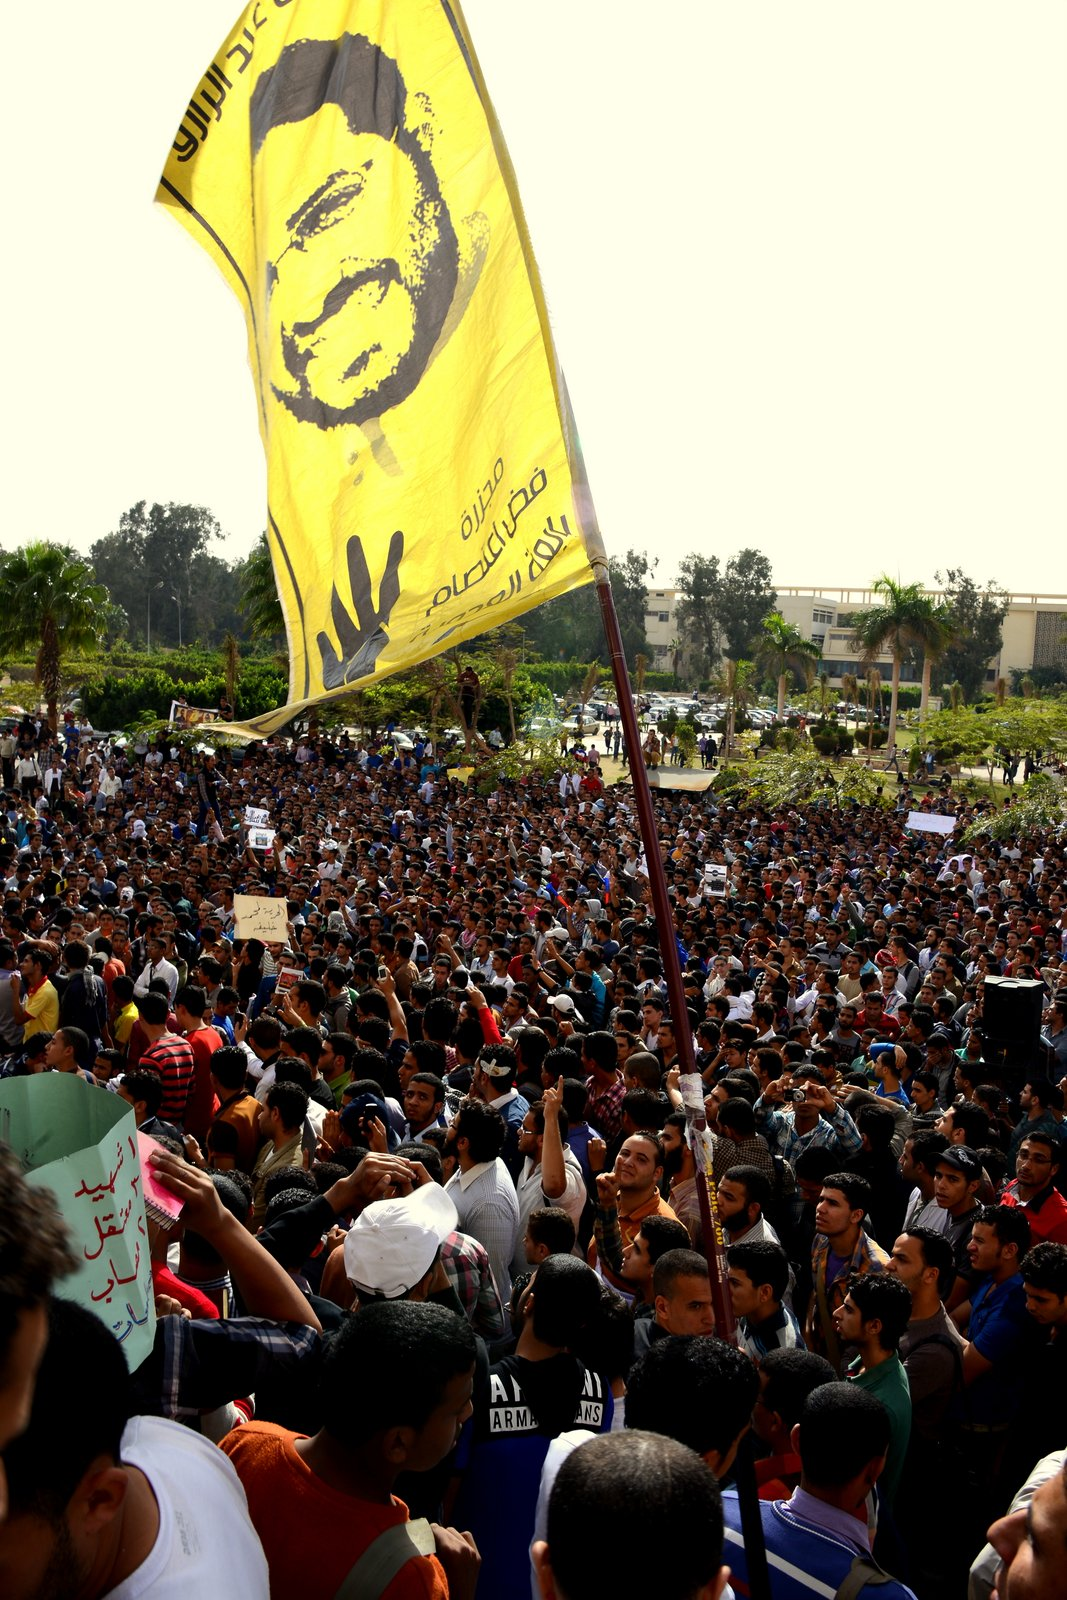 Protesters at Al-Azhar University Yesterday (Photo by Aaron T.rose)